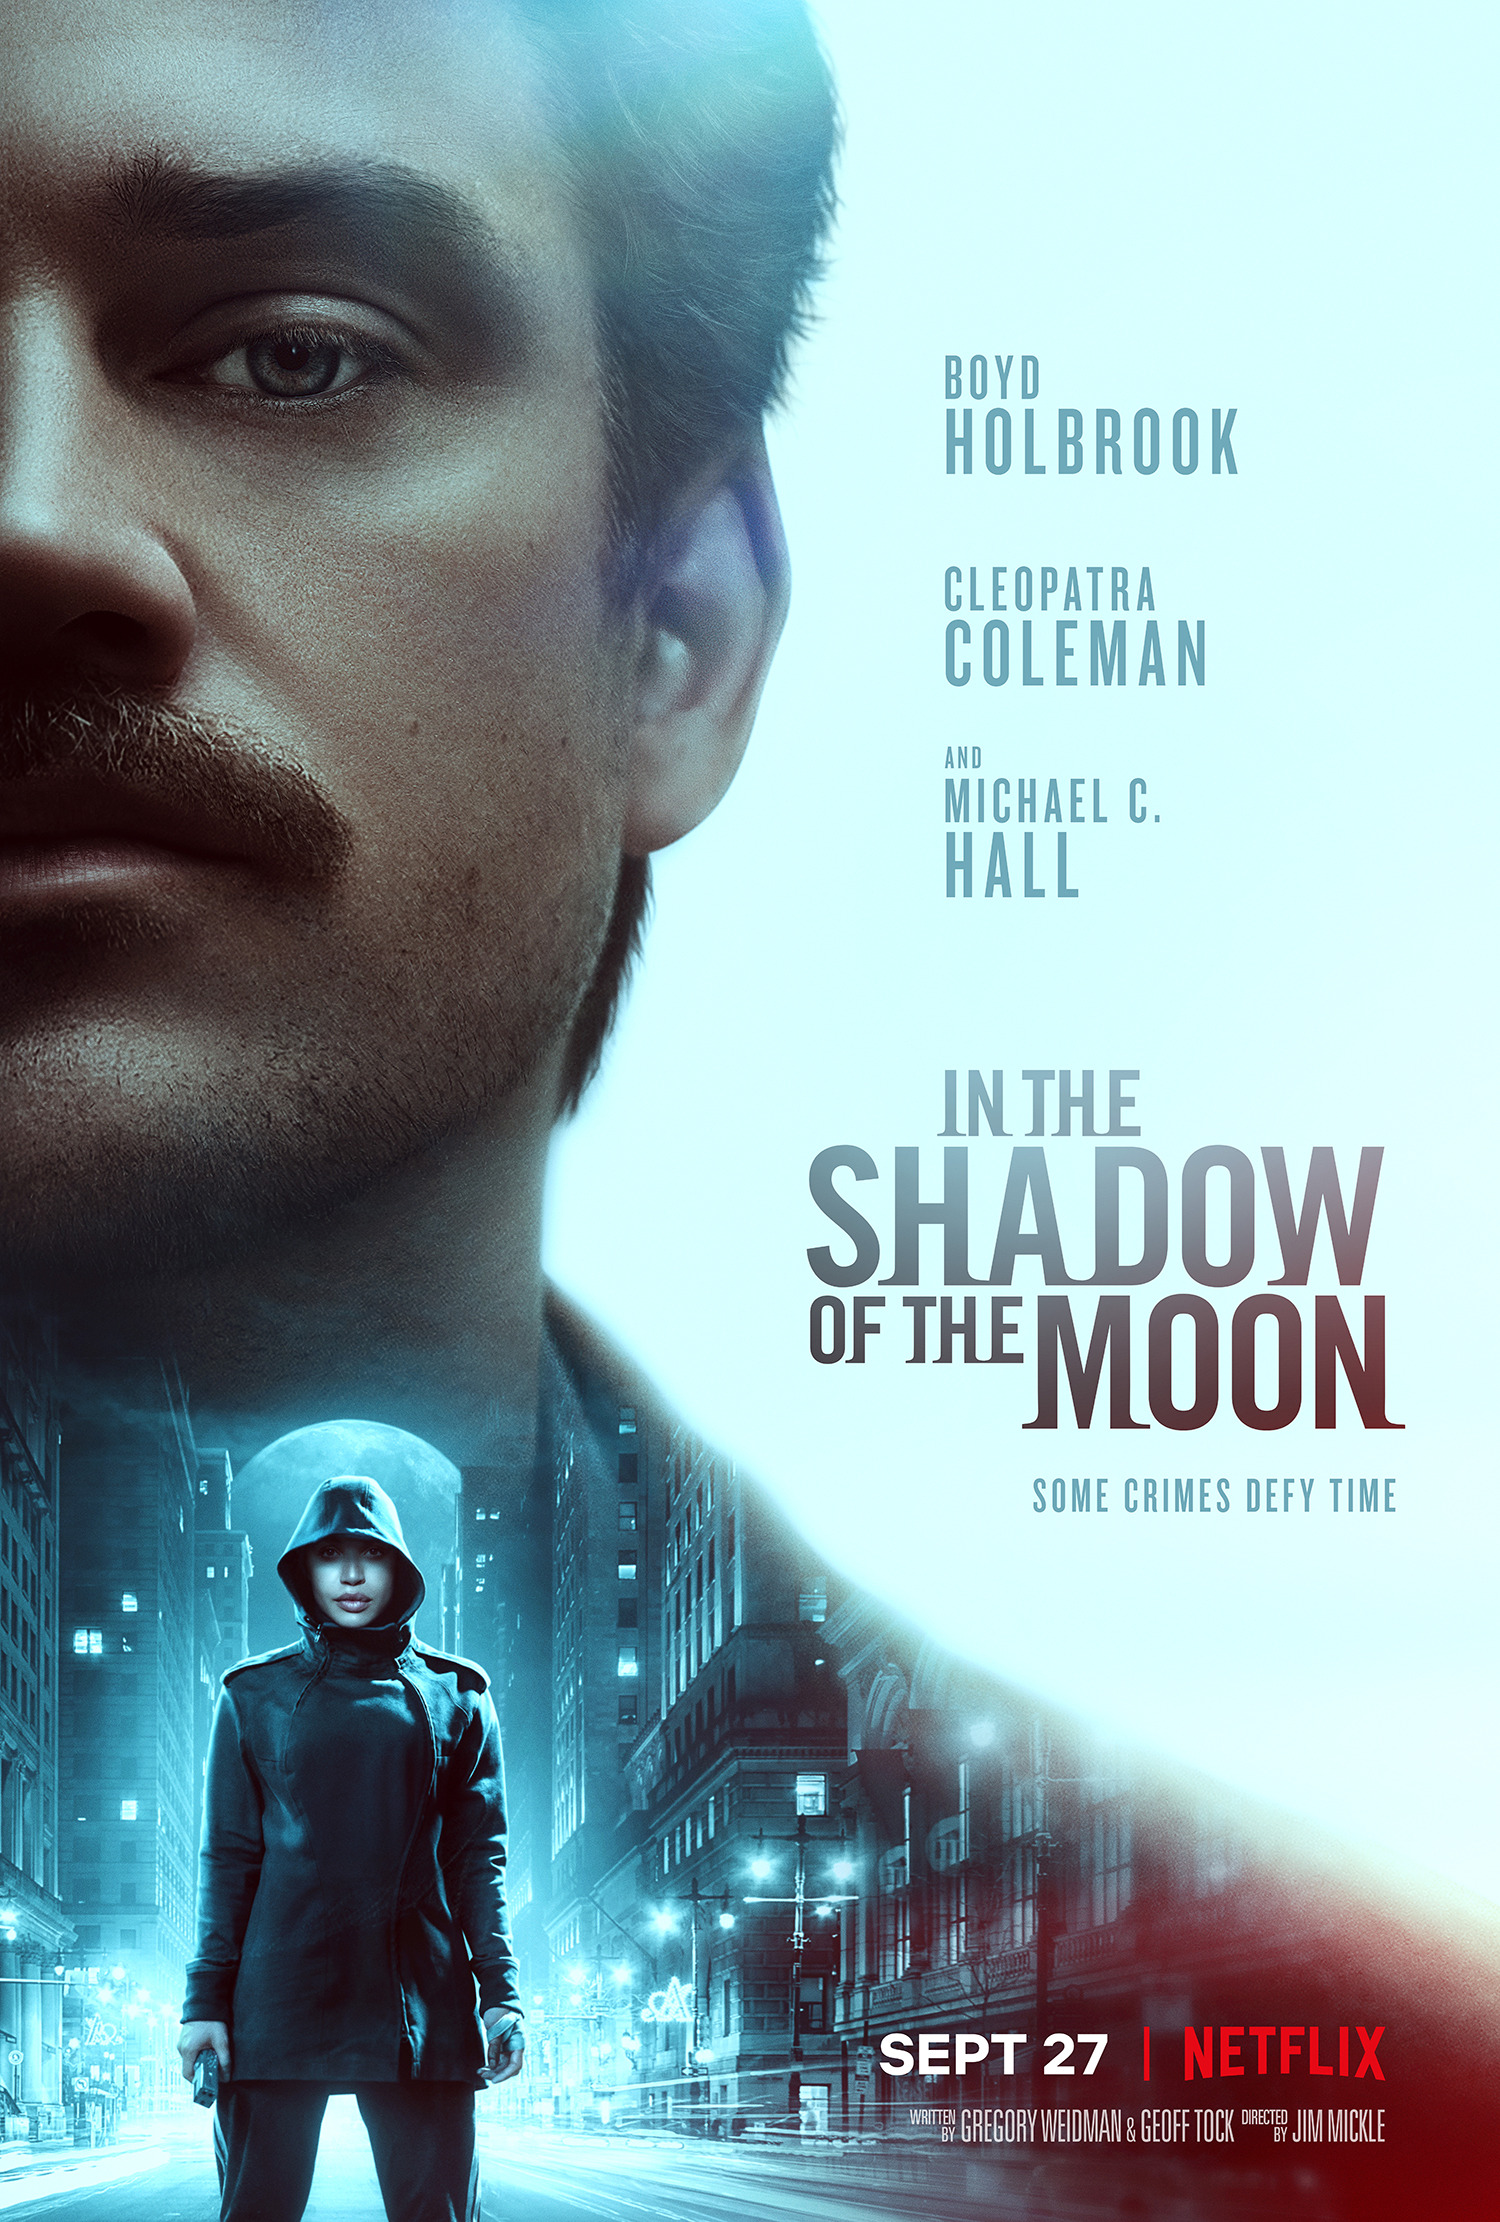 In the shadow of the moon - Poster.jpg